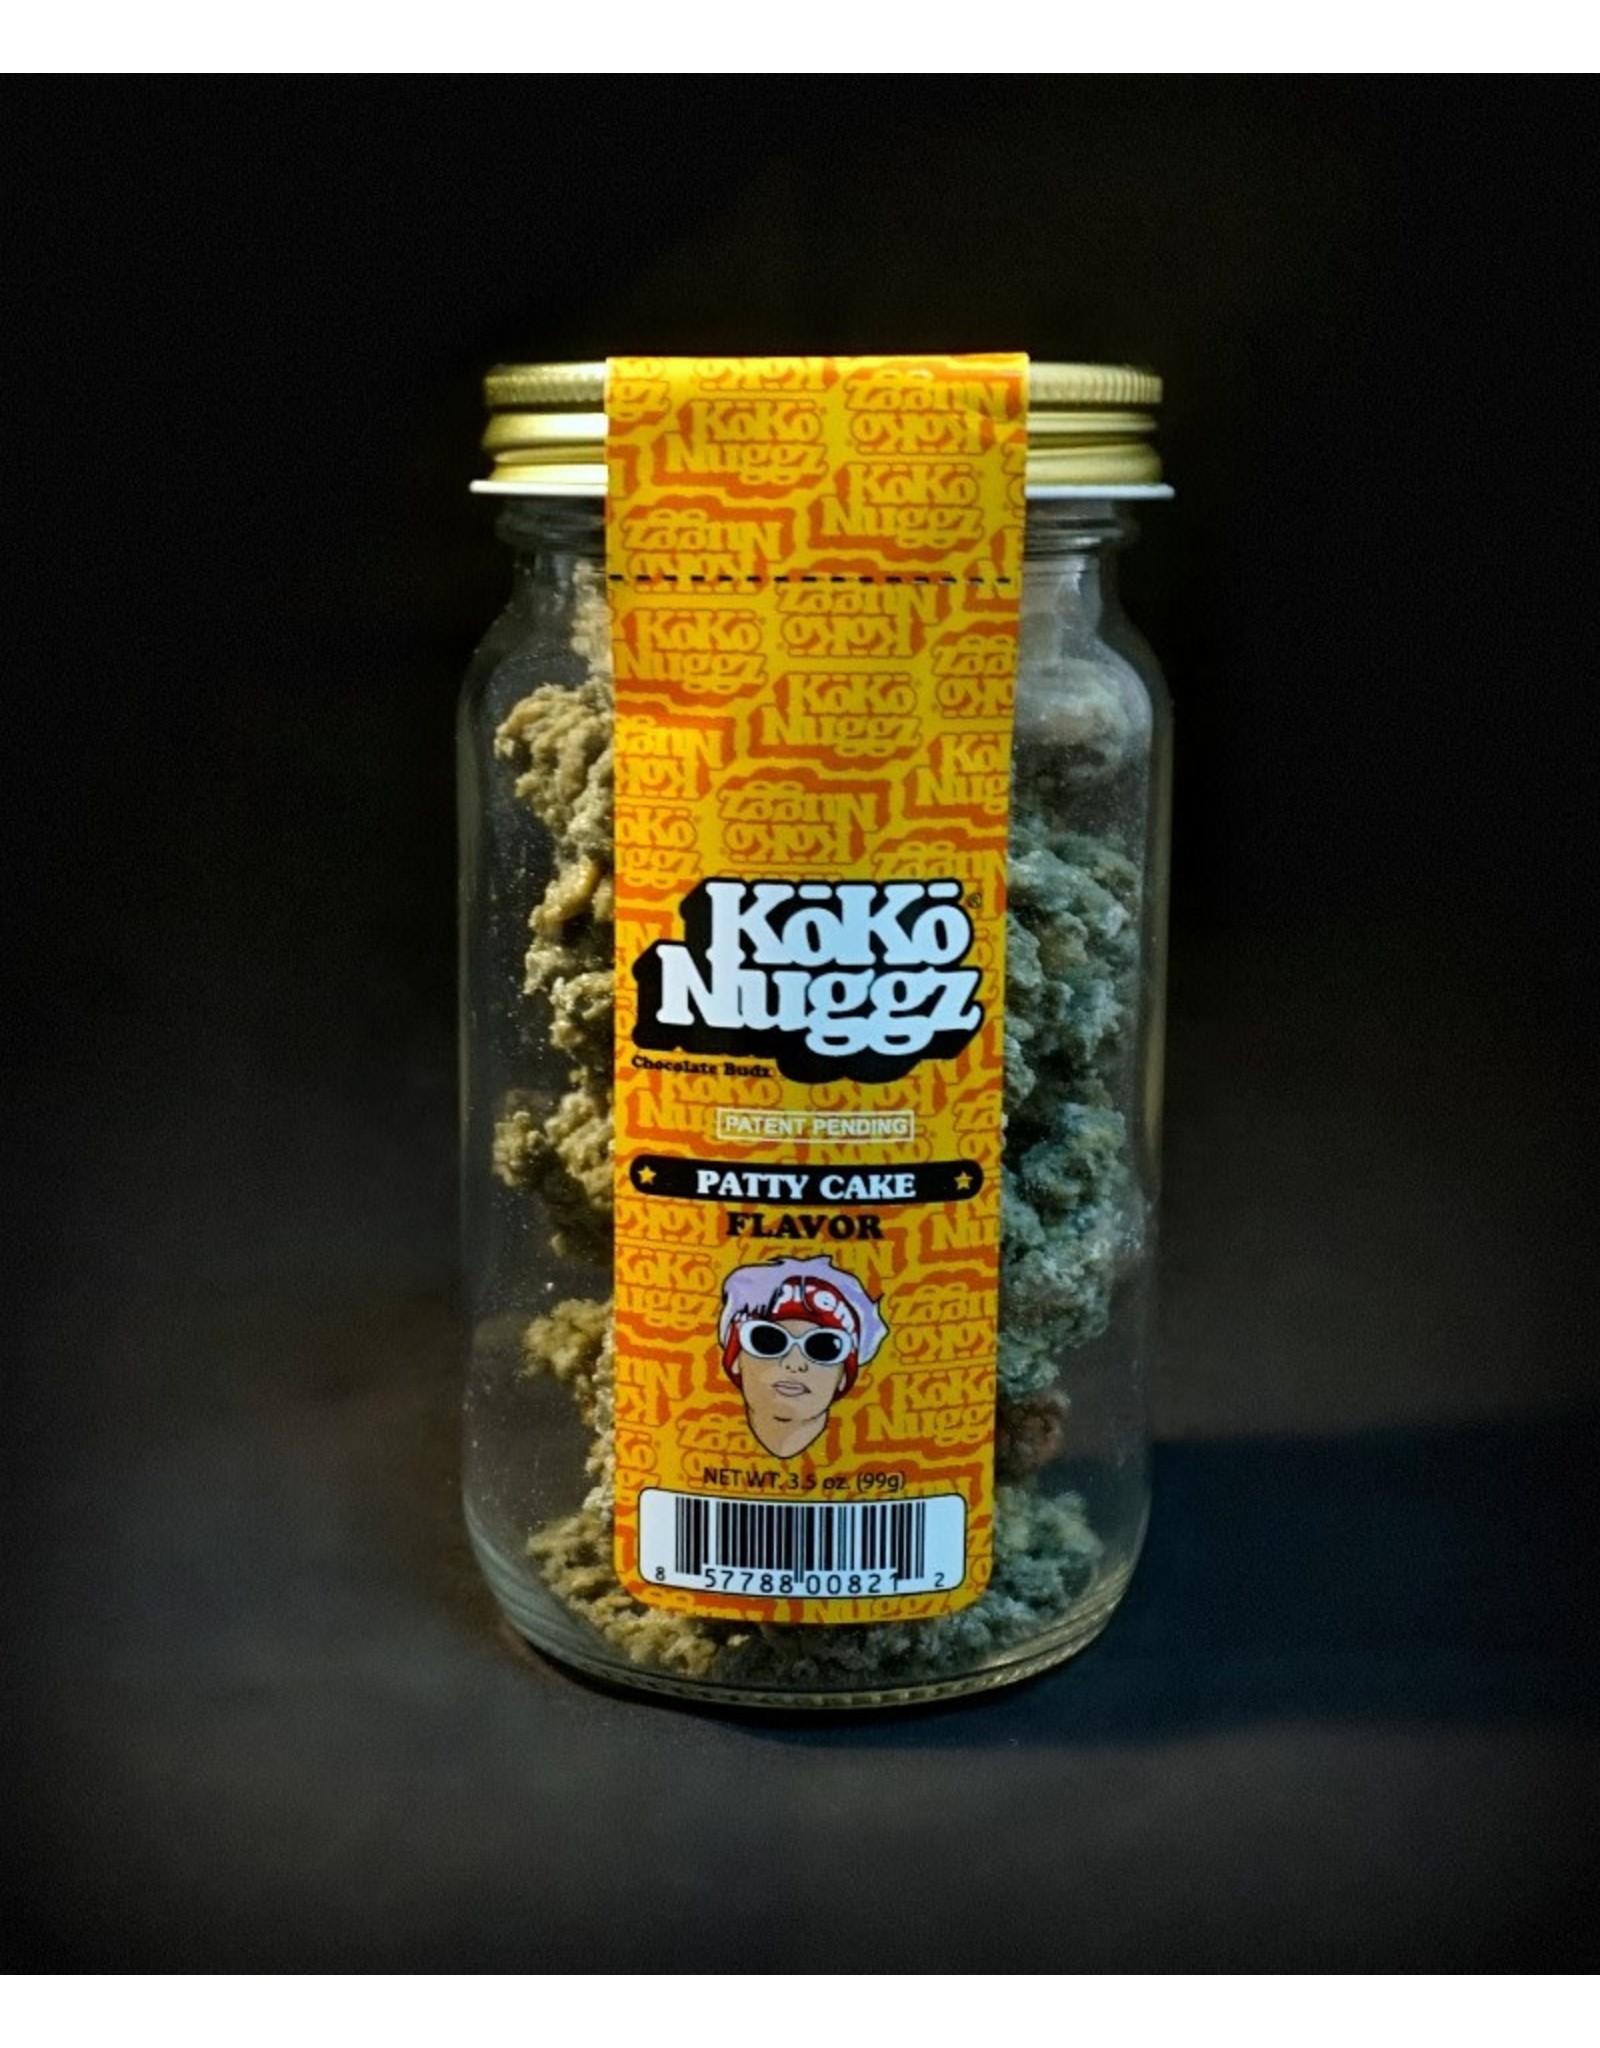 Koko Nuggz Koko Nuggz 2.25oz Jar – Patty Cake